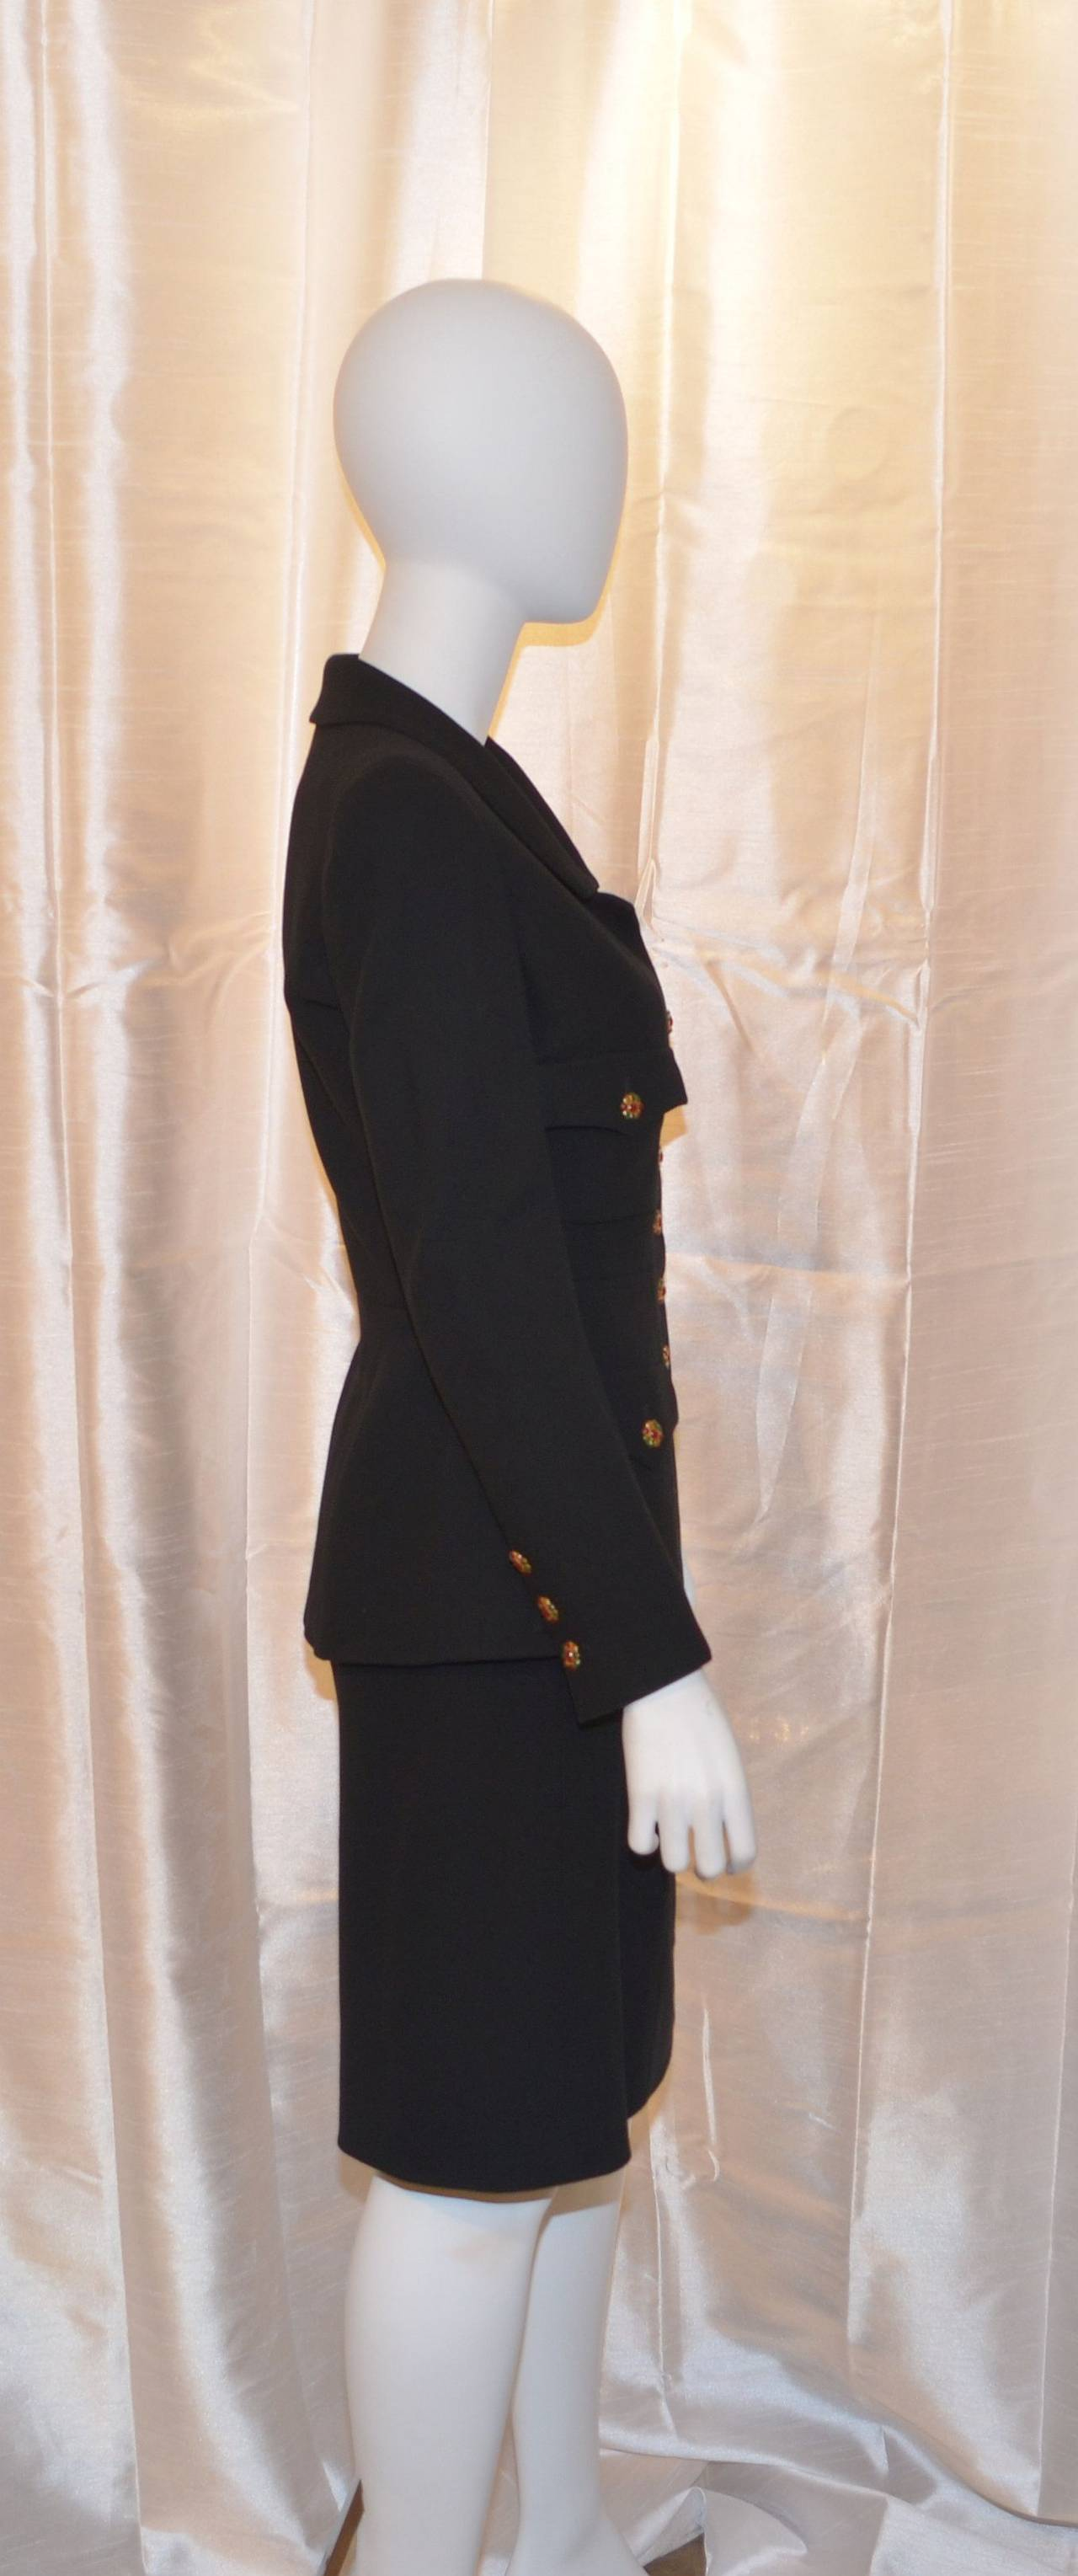 Chanel suit jacket features beautiful gripoix glass button closures along the front center as well as on the flap pockets and cuffs. Skirt has a back zipper and hook-and-eye closure. Made in France, size 40. Suit is made with 100% wool and lined